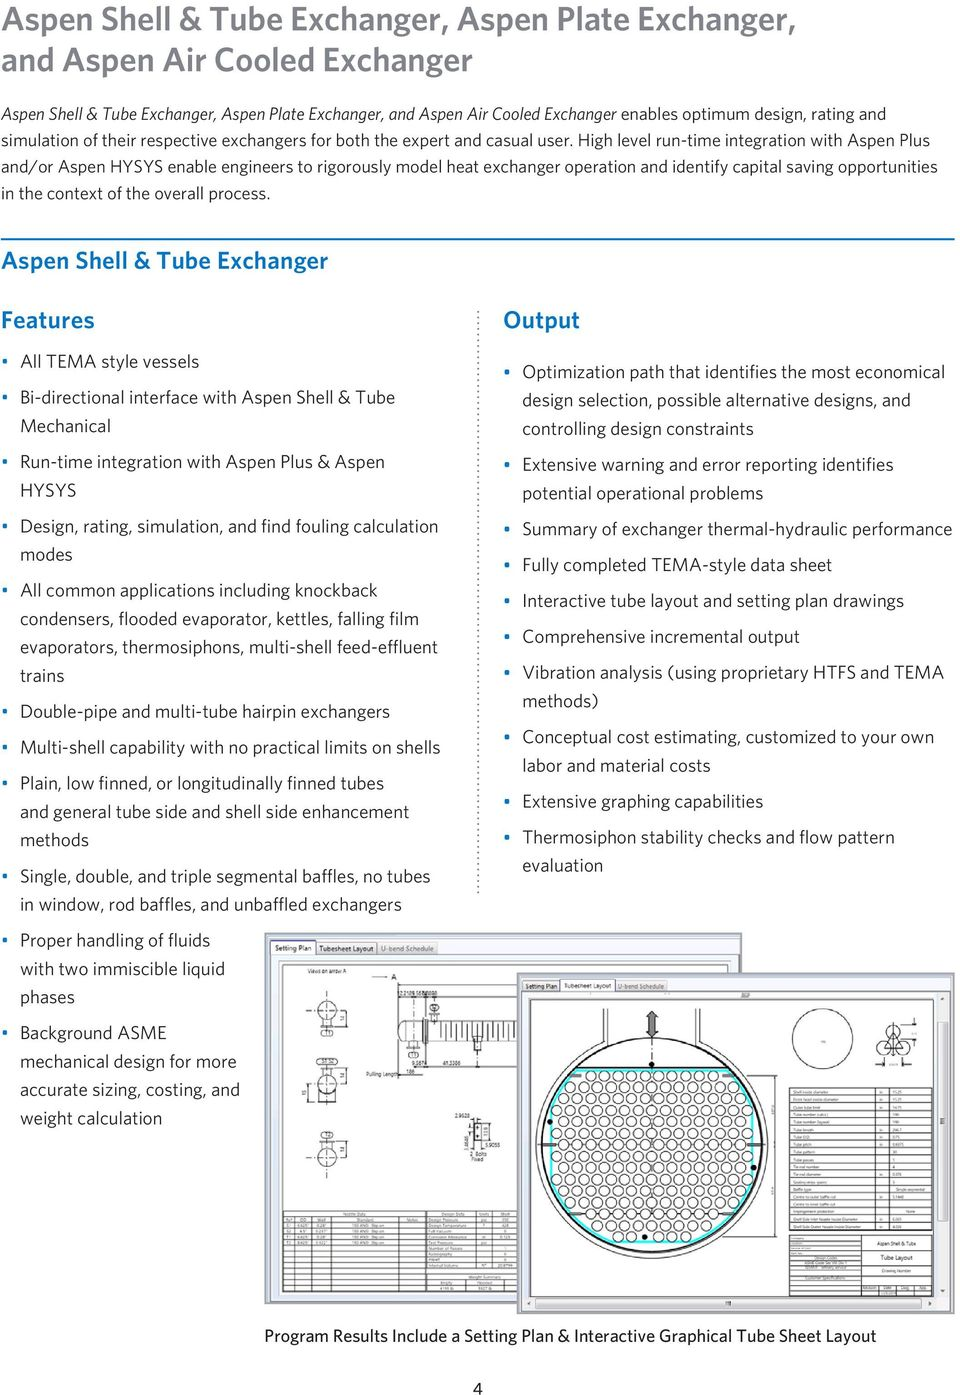 Aspen Exchanger Design Rating Family Pdf Piping Layout Heat High Level Run Time Integration With Plus And Or Hysys Enable Engineers